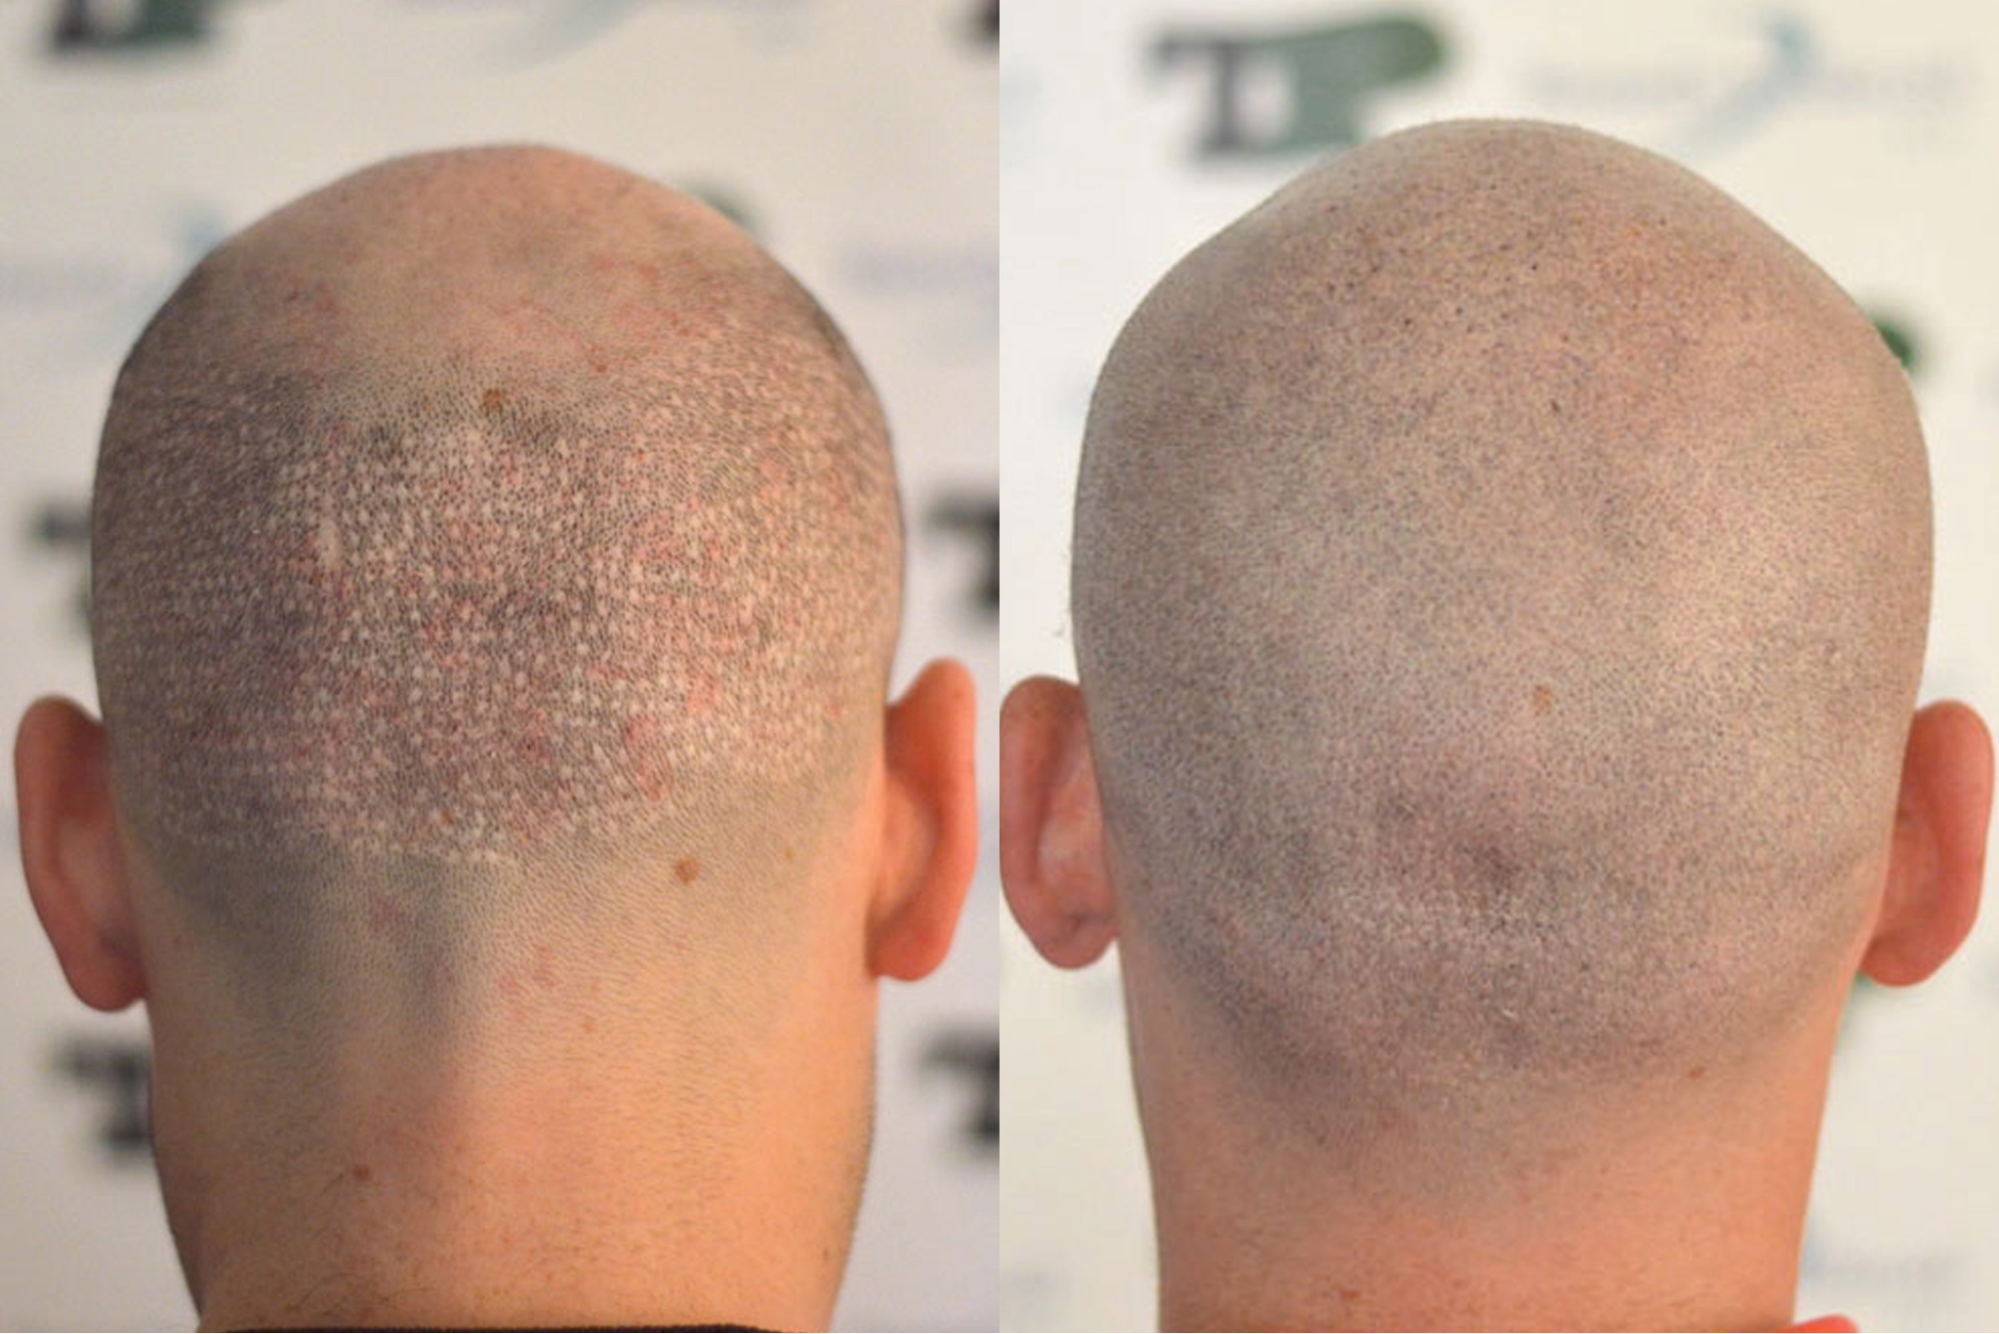 Best FUE hair transplant in Hyderabad, non-surgical hair replacement near Manikonda